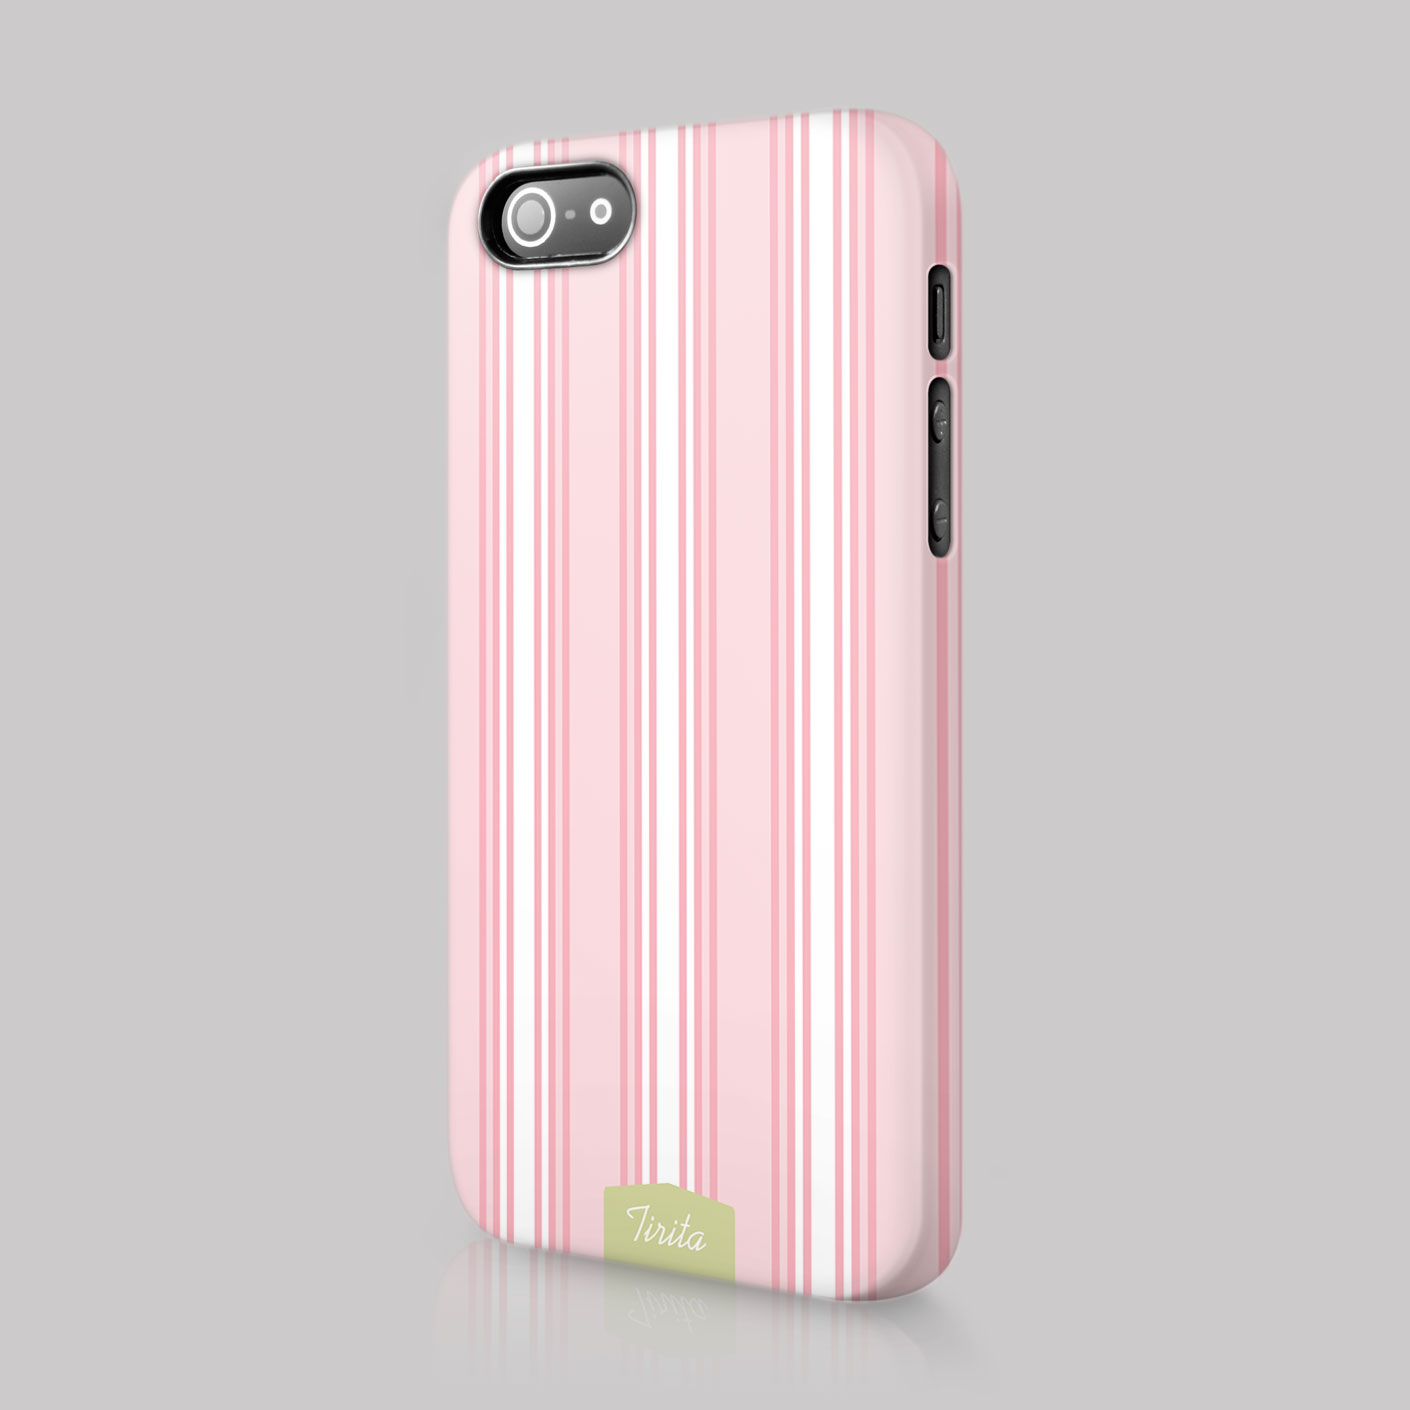 Tirita lines shabby chic striped case hard cover for for Case arredate shabby chic